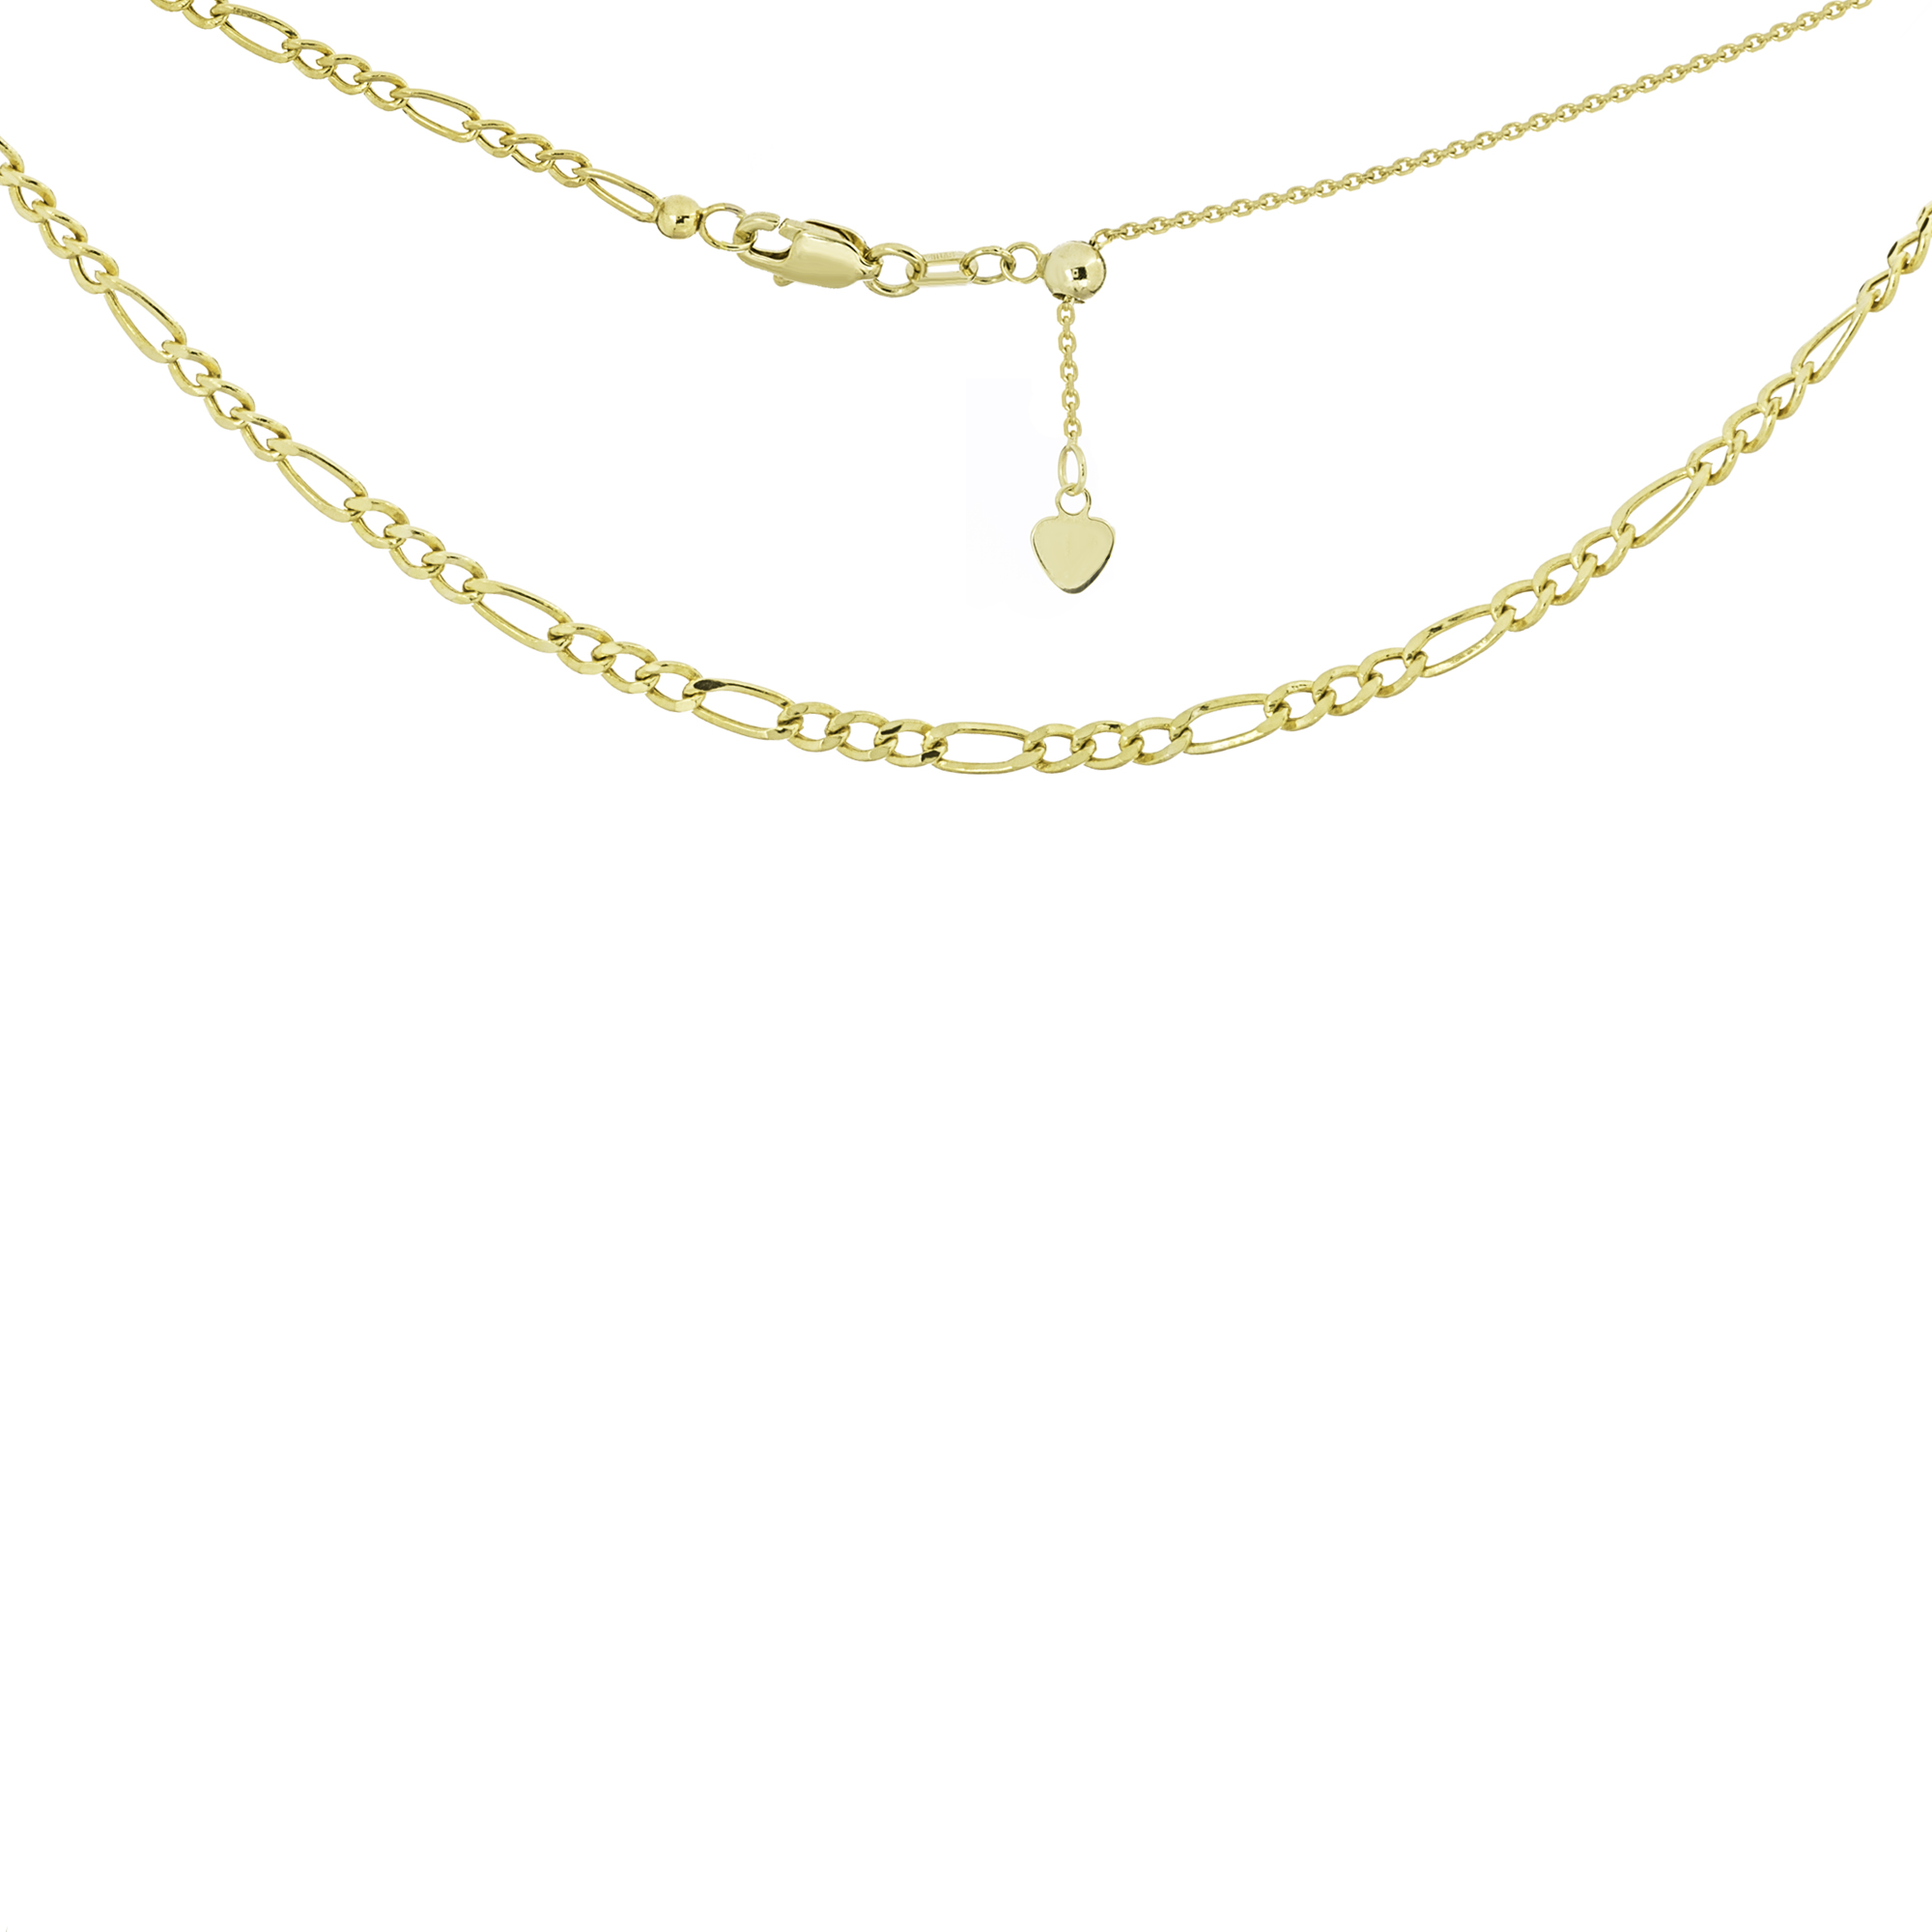 pave pendant lyst gold evan necklace key product in chains sydney gallery pav diamond jewelry paveacute